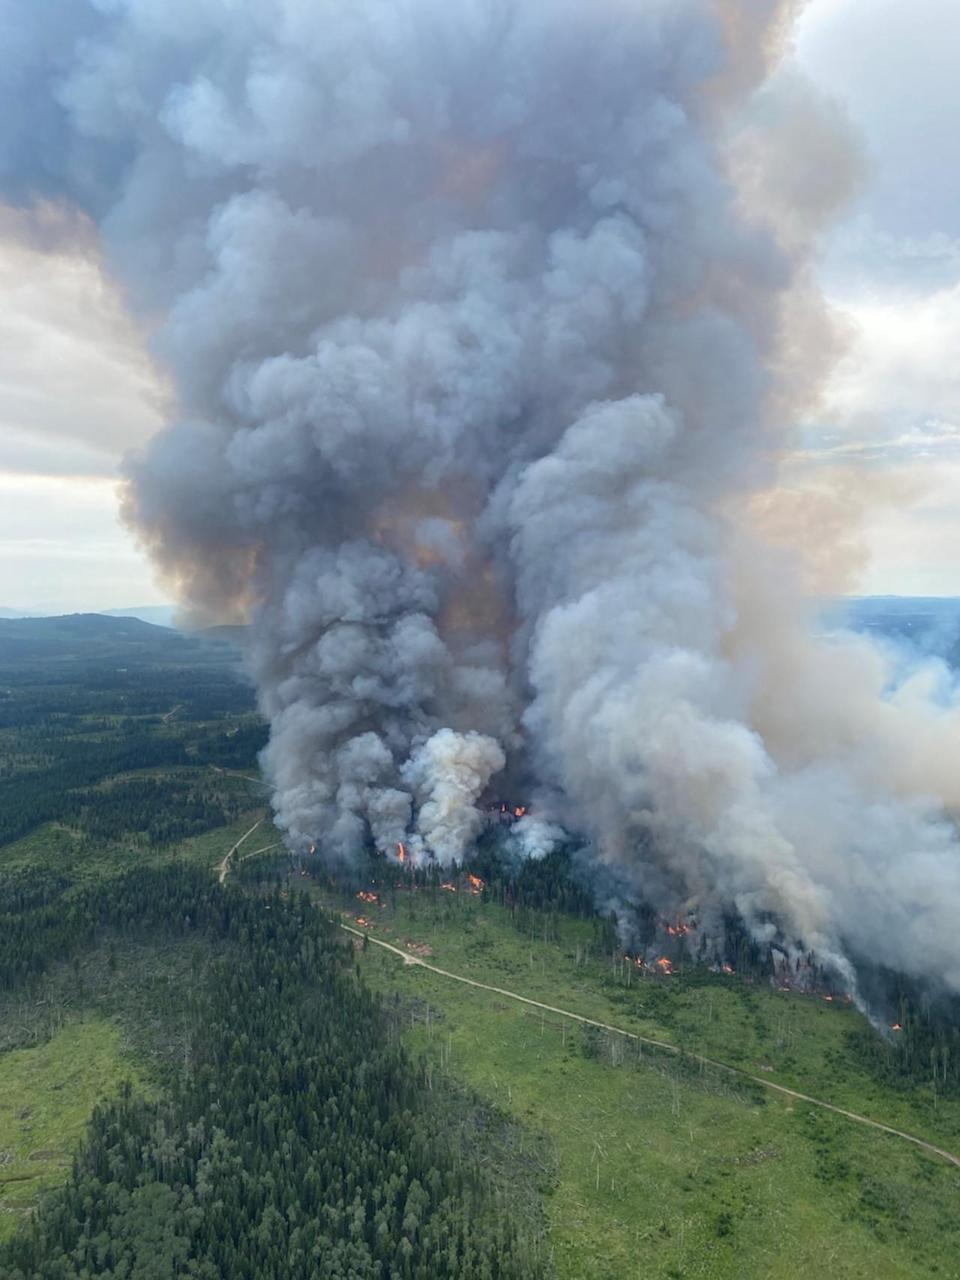 Air quality remains poor as multiple threats keep fire danger high in B.C.